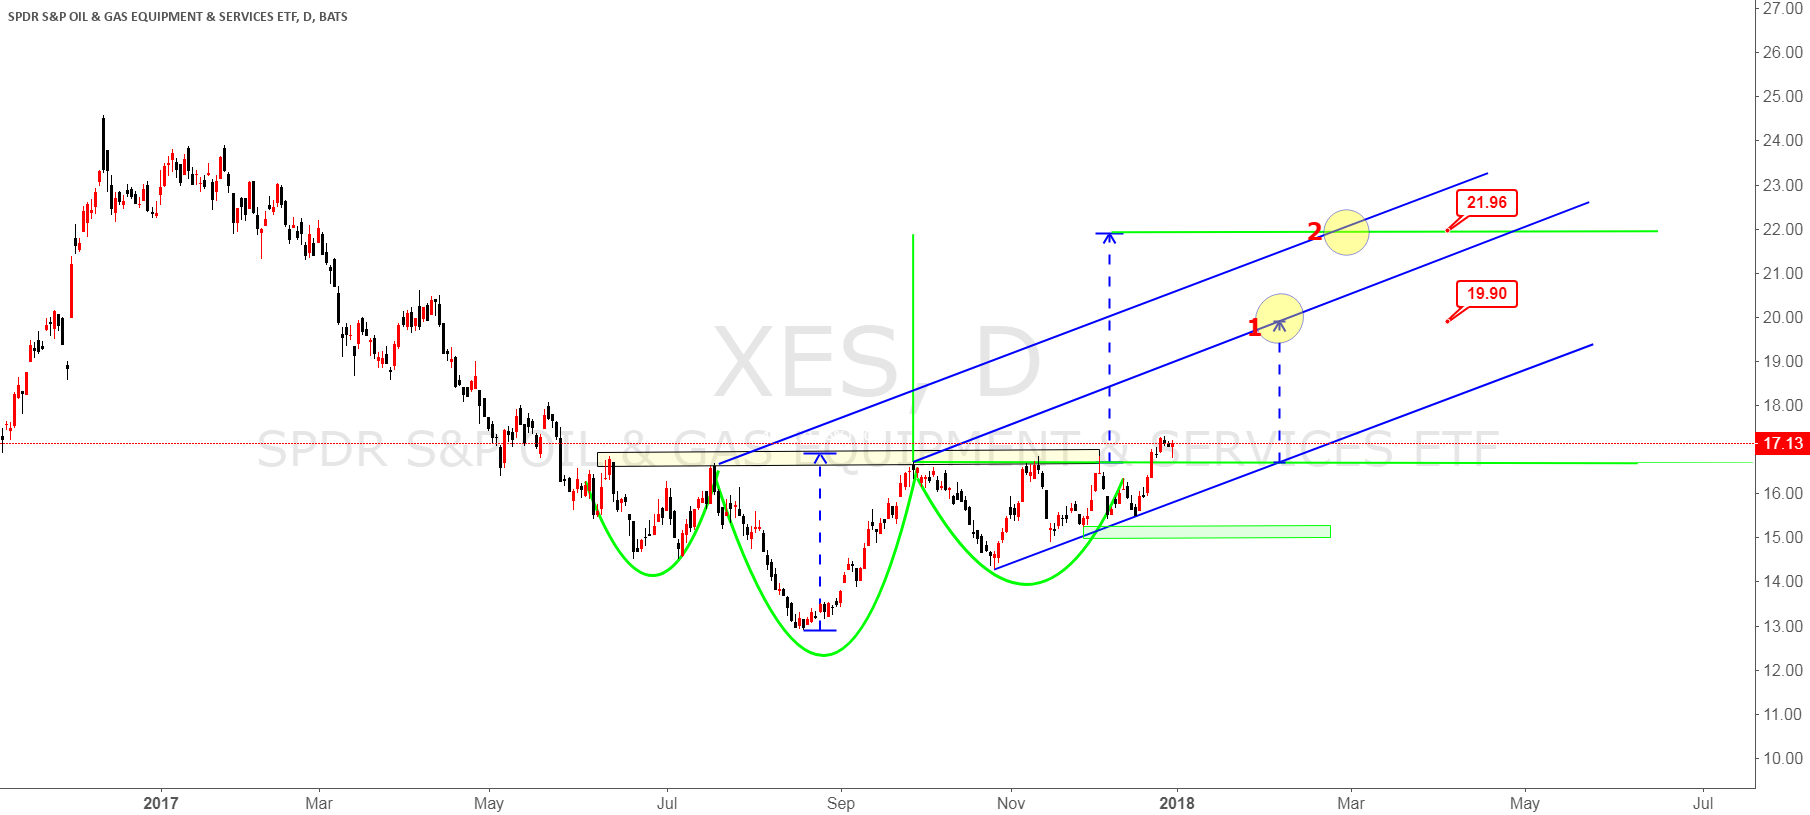 XES the performance of the S&P Oil & Gas Equipment